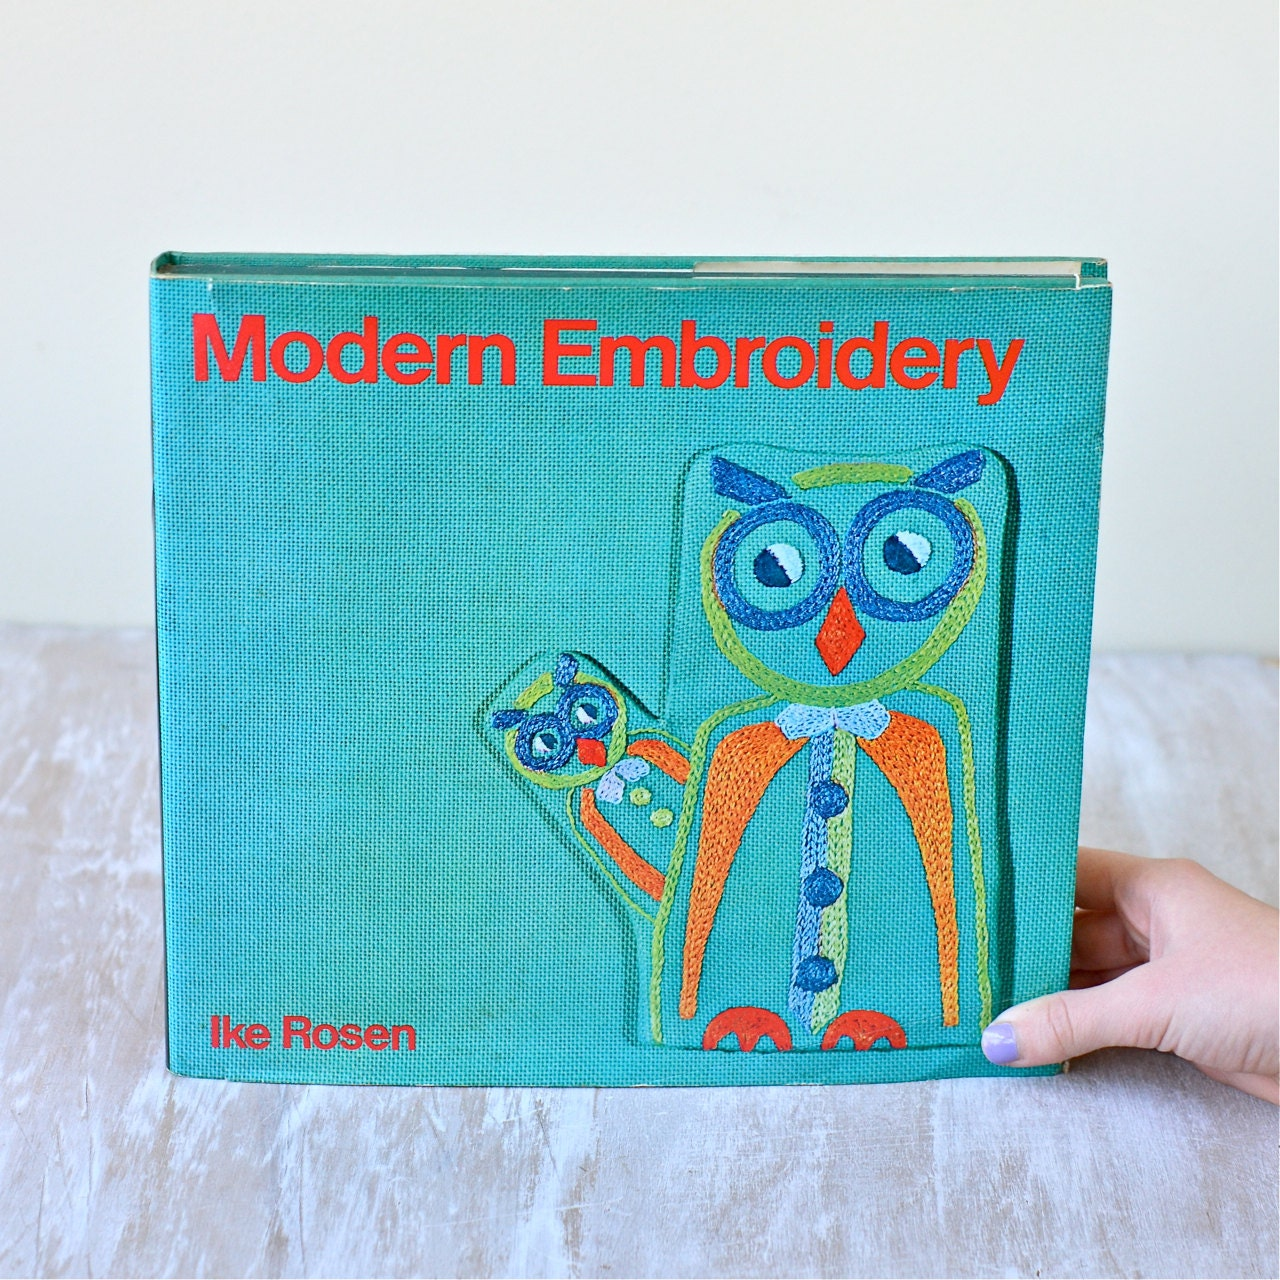 Vintage modern embroidery hardcover book ike